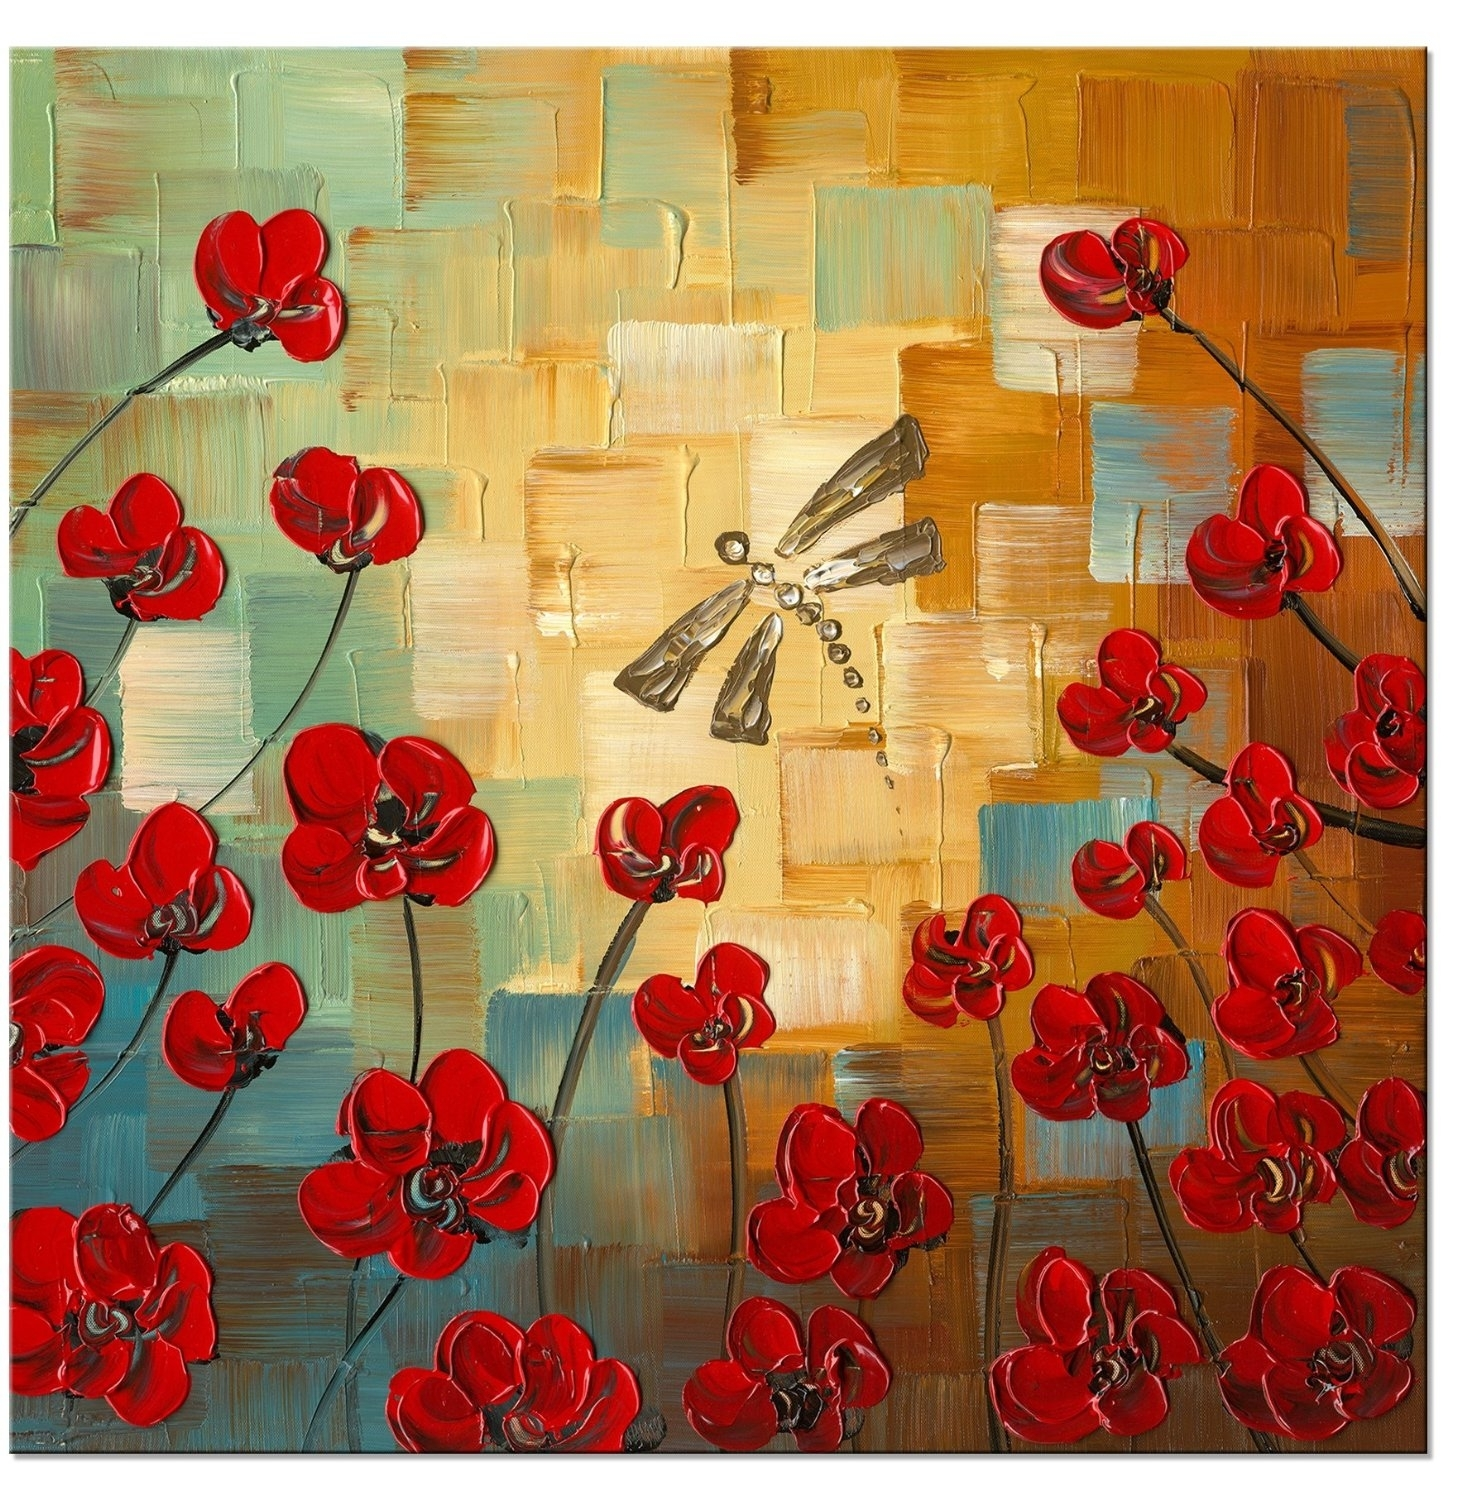 Dragonfly Modern Canvas Art Wall Decor Floral Oil Painting Wall Art Inside Most Recently Released Floral Wall Art (Gallery 19 of 20)